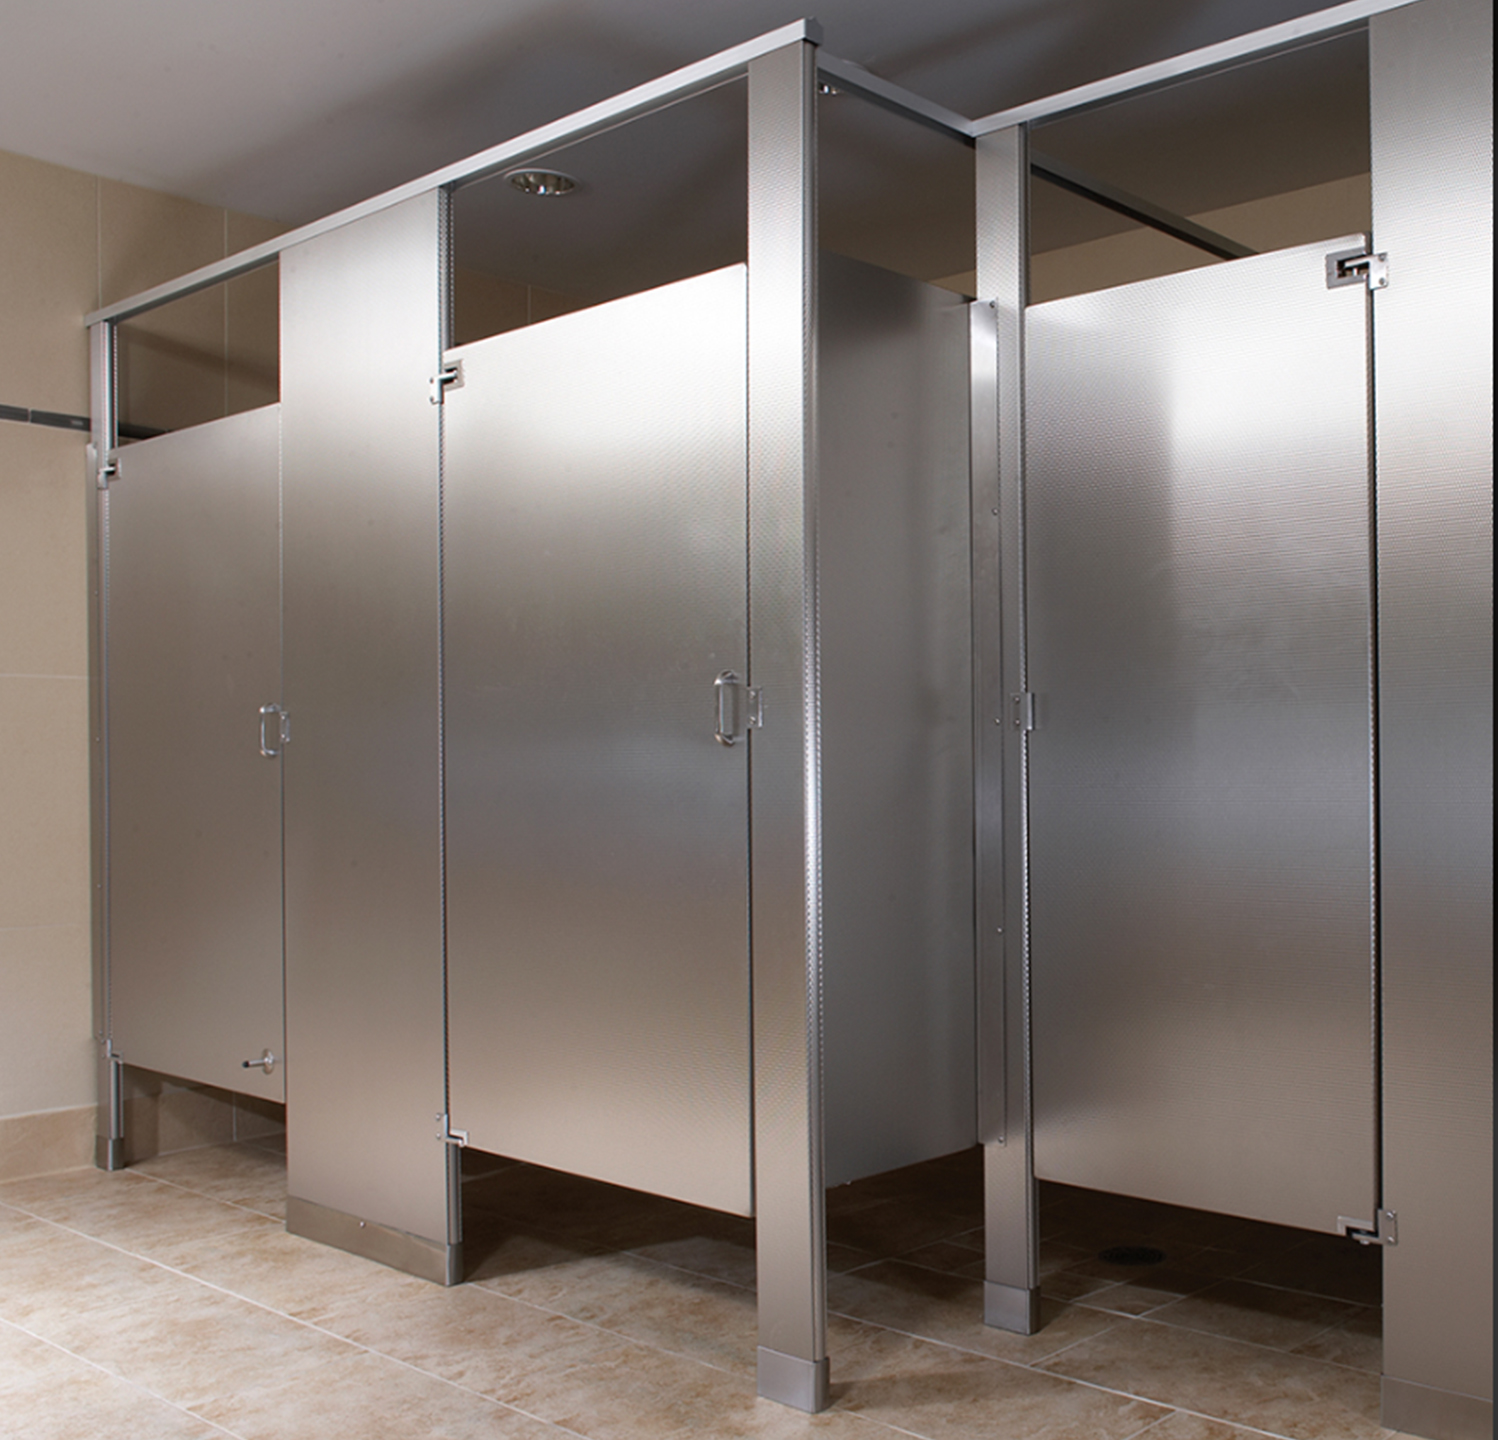 "The partitions feature 72"" tall doors and panels mounted 6"" above the finished floor for standard stalls, and 69"" tall doors and panels mounted 9"" above the finished floor for ADA stalls."